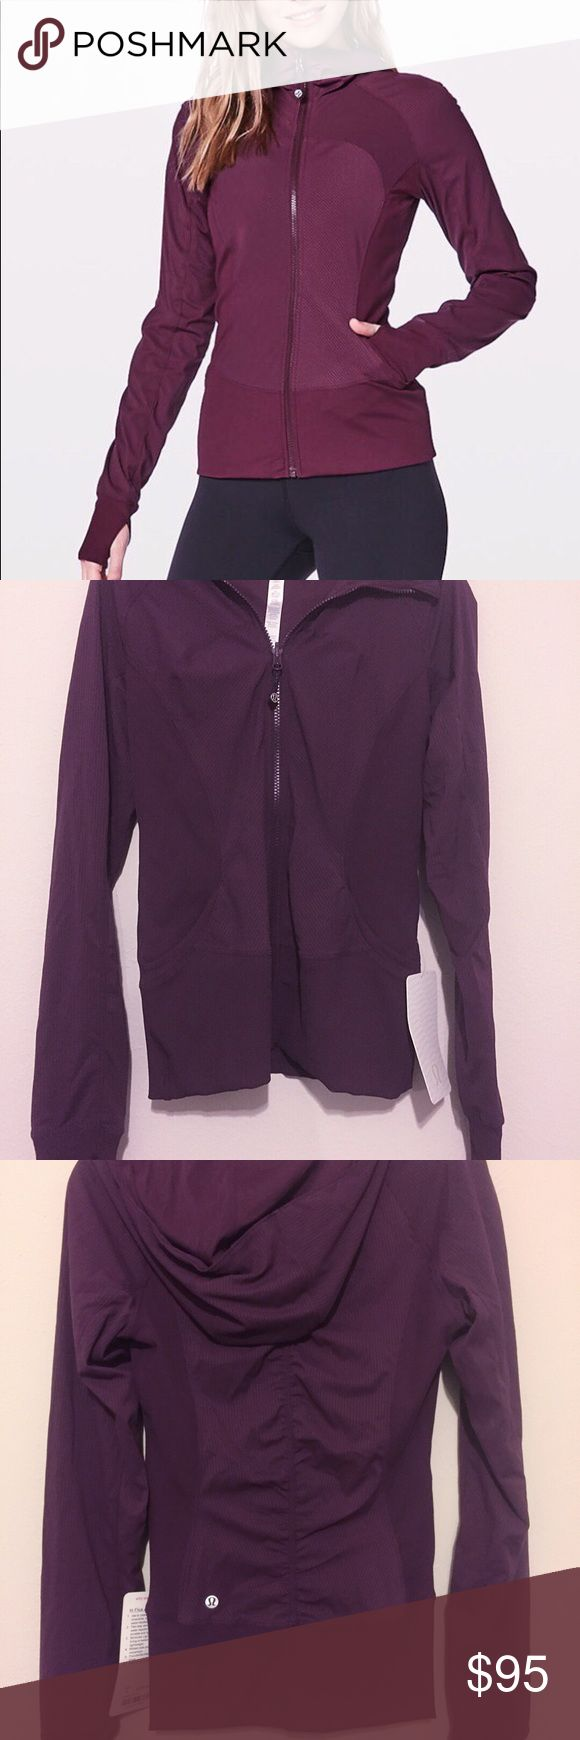 Lululemon Reversible In Flux Jacket. Plum. New! Very stylish jacket with Ribbed Side Panels Let You Twist And Turn, Thumbholes Help Keep Your Sleeves In Place And Hands Warm, Tight Fit, Sits Right Against Your Body For Easy Layering, Hip Length, stays Out Of Your Way And Moves With You. Size 6. Color Plum.   Reversible Design  Lets You Practice The Power Of Choice! lululemon athletica Jackets & Coats